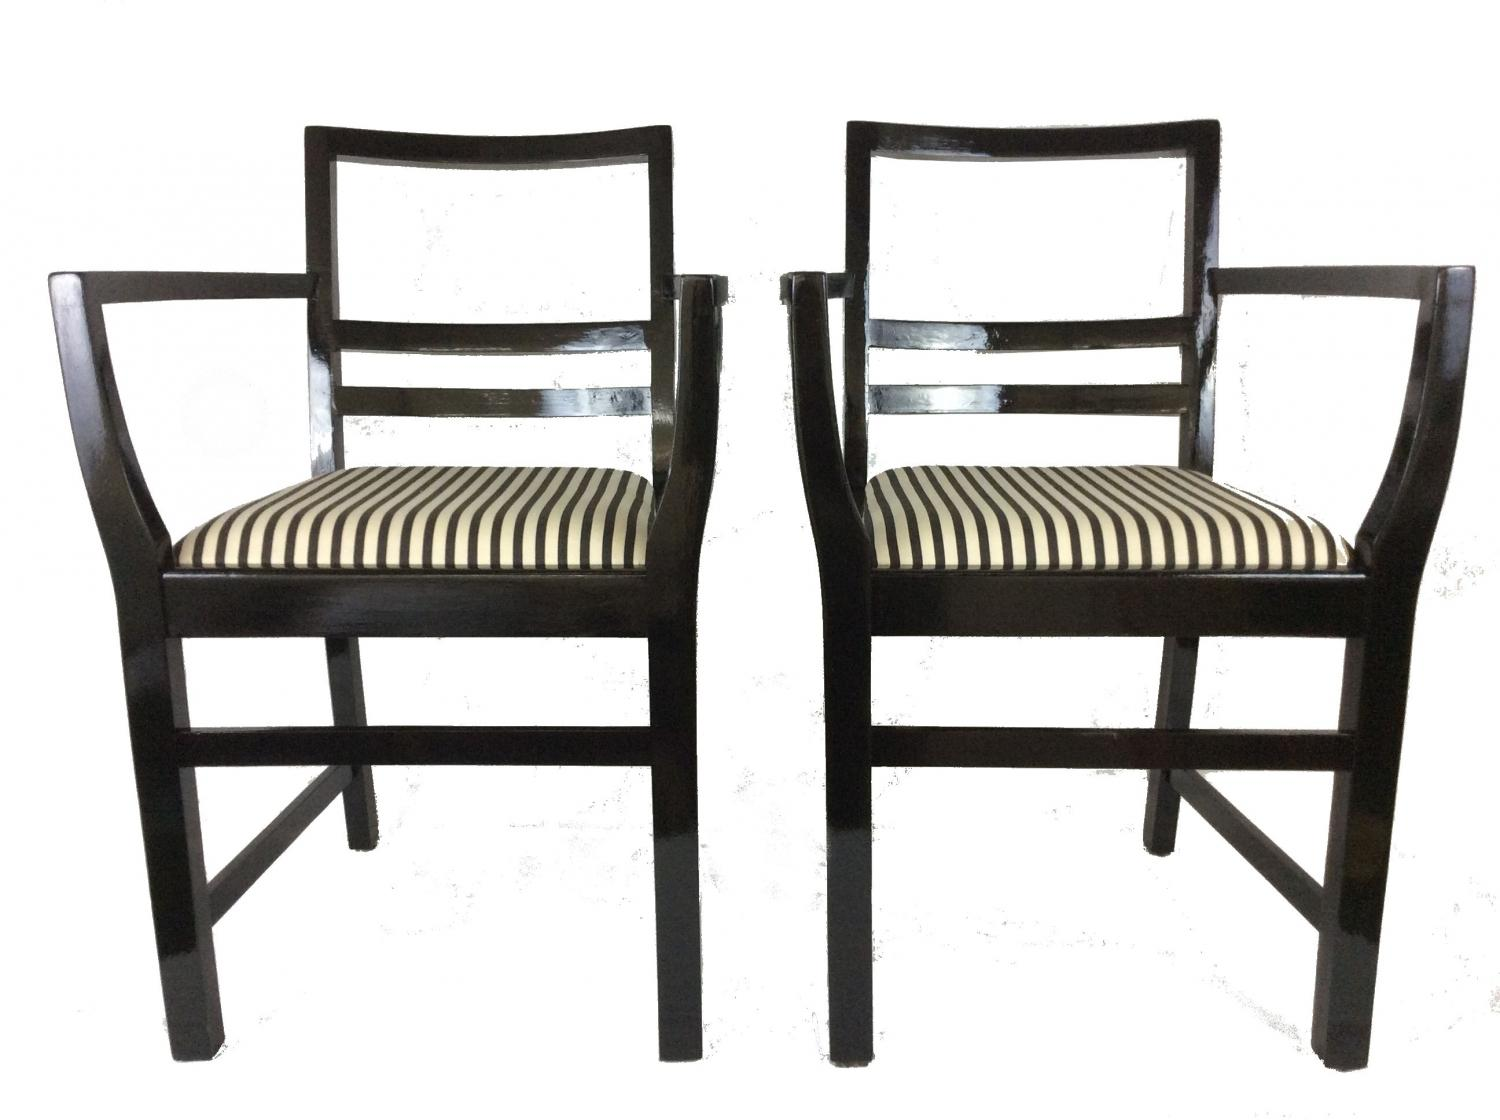 Monochrome striped Chairs